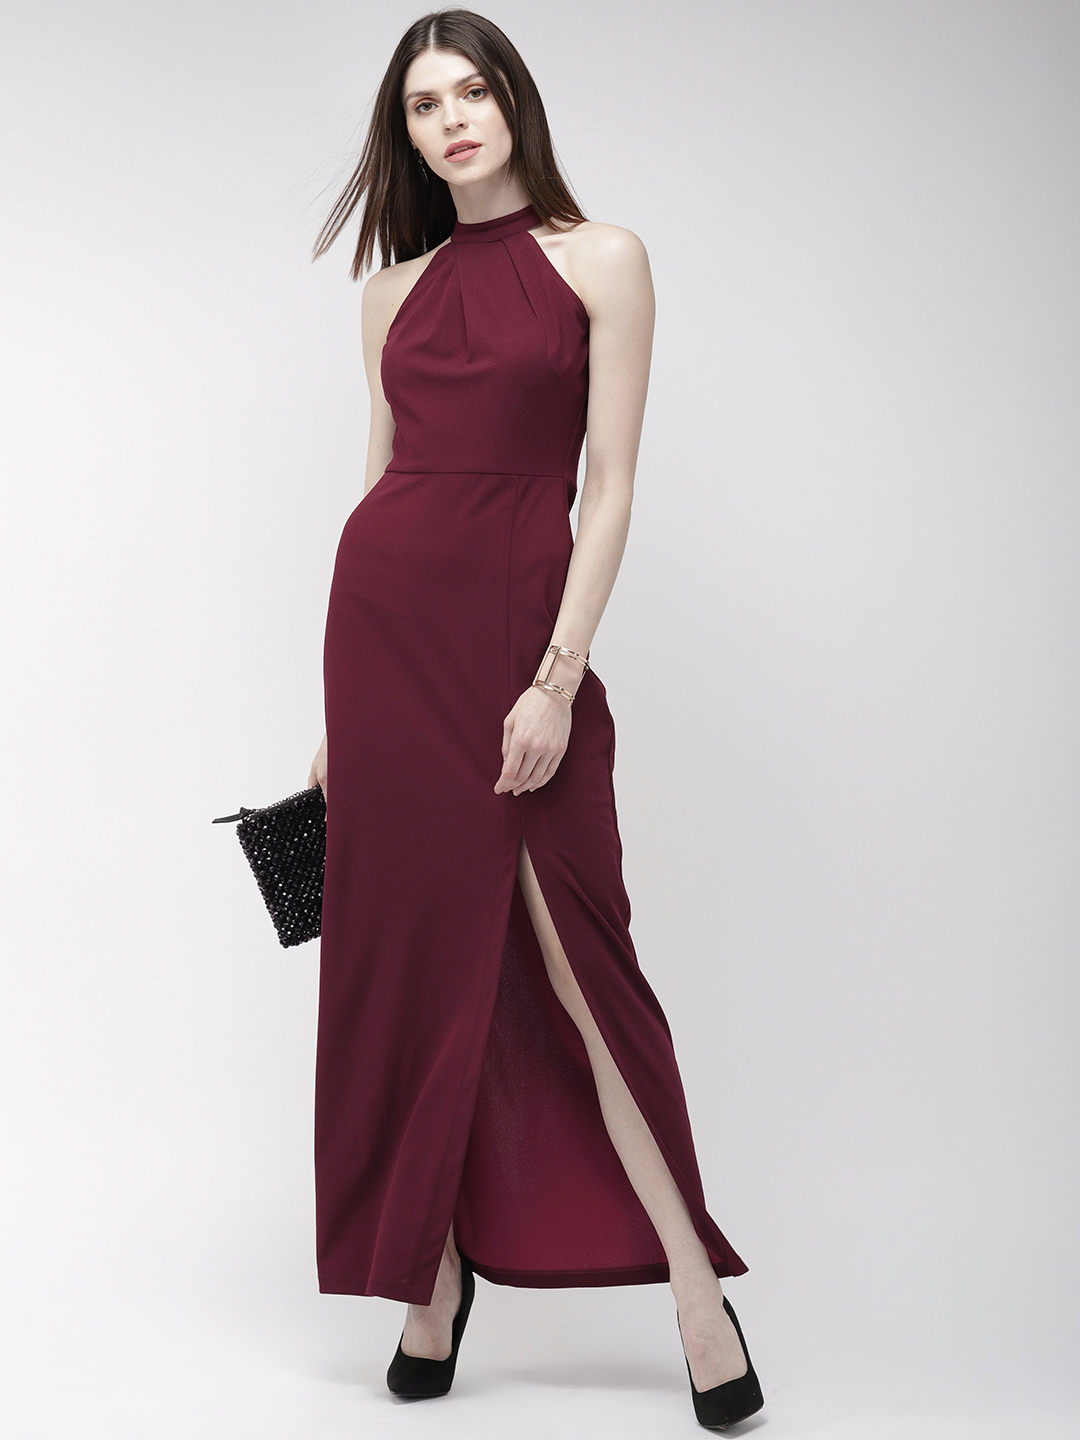 Dresses-You Are Still The One Slit Maxi Dress1